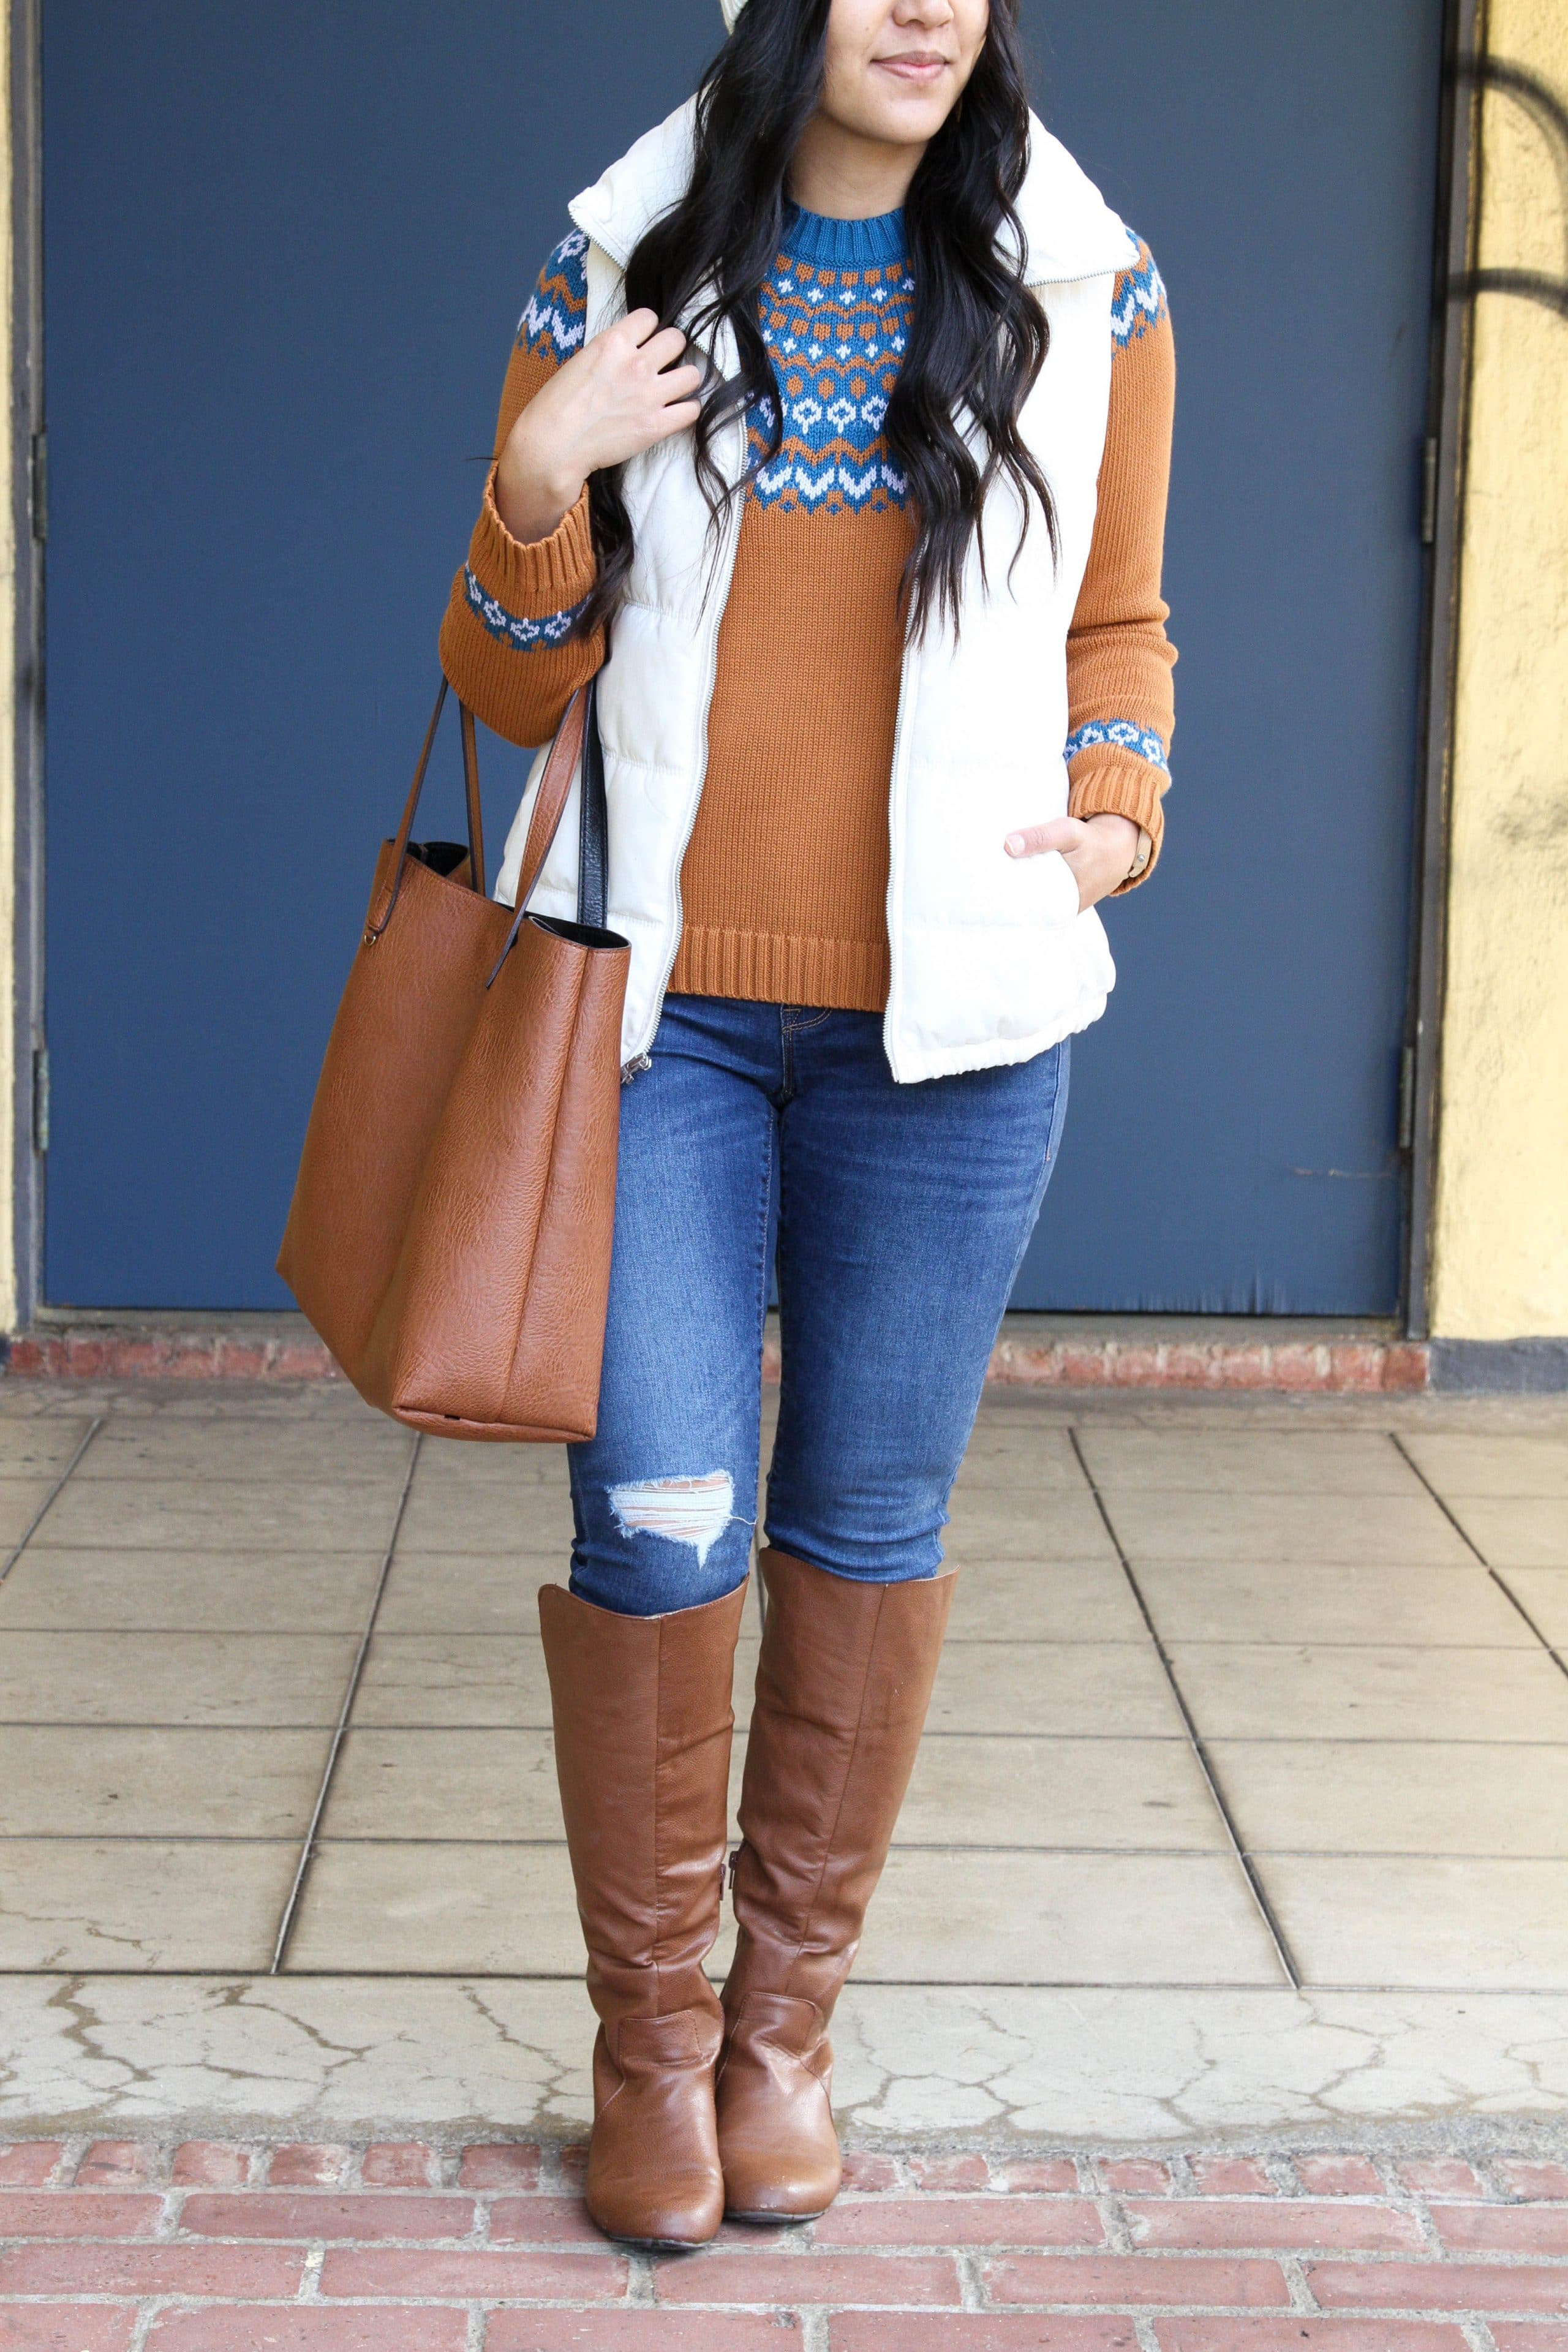 Skinnies + White Vest + Fair Isle Sweater + Tote + Boots